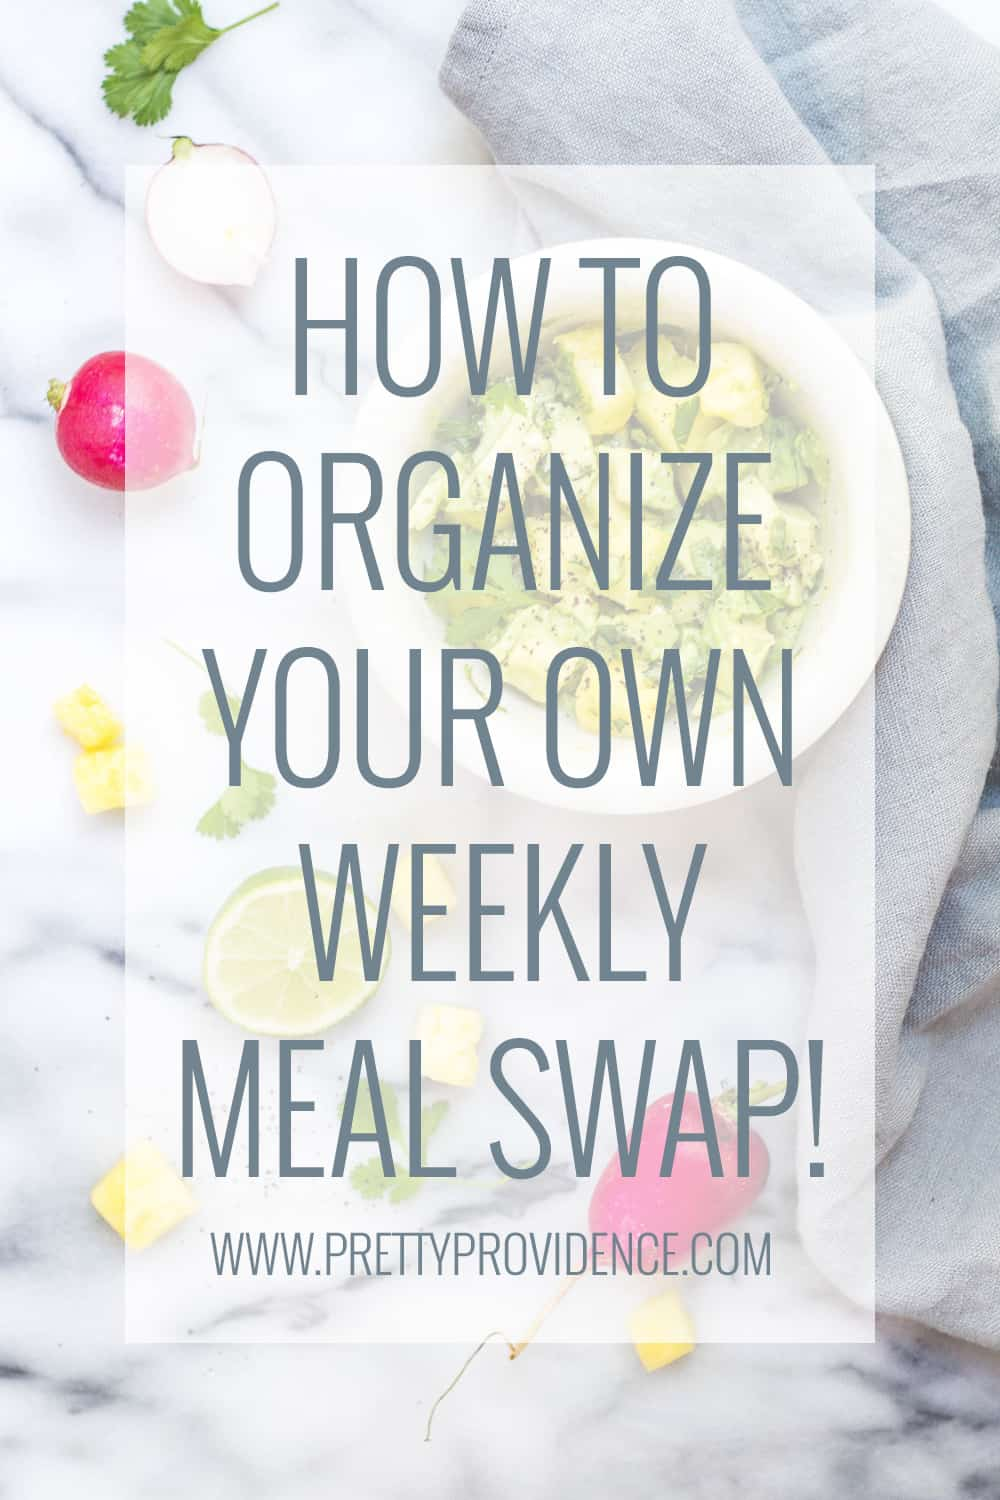 How to organize your own weekly meal swap! Save time, money, and diversify what you eat! Win/win!